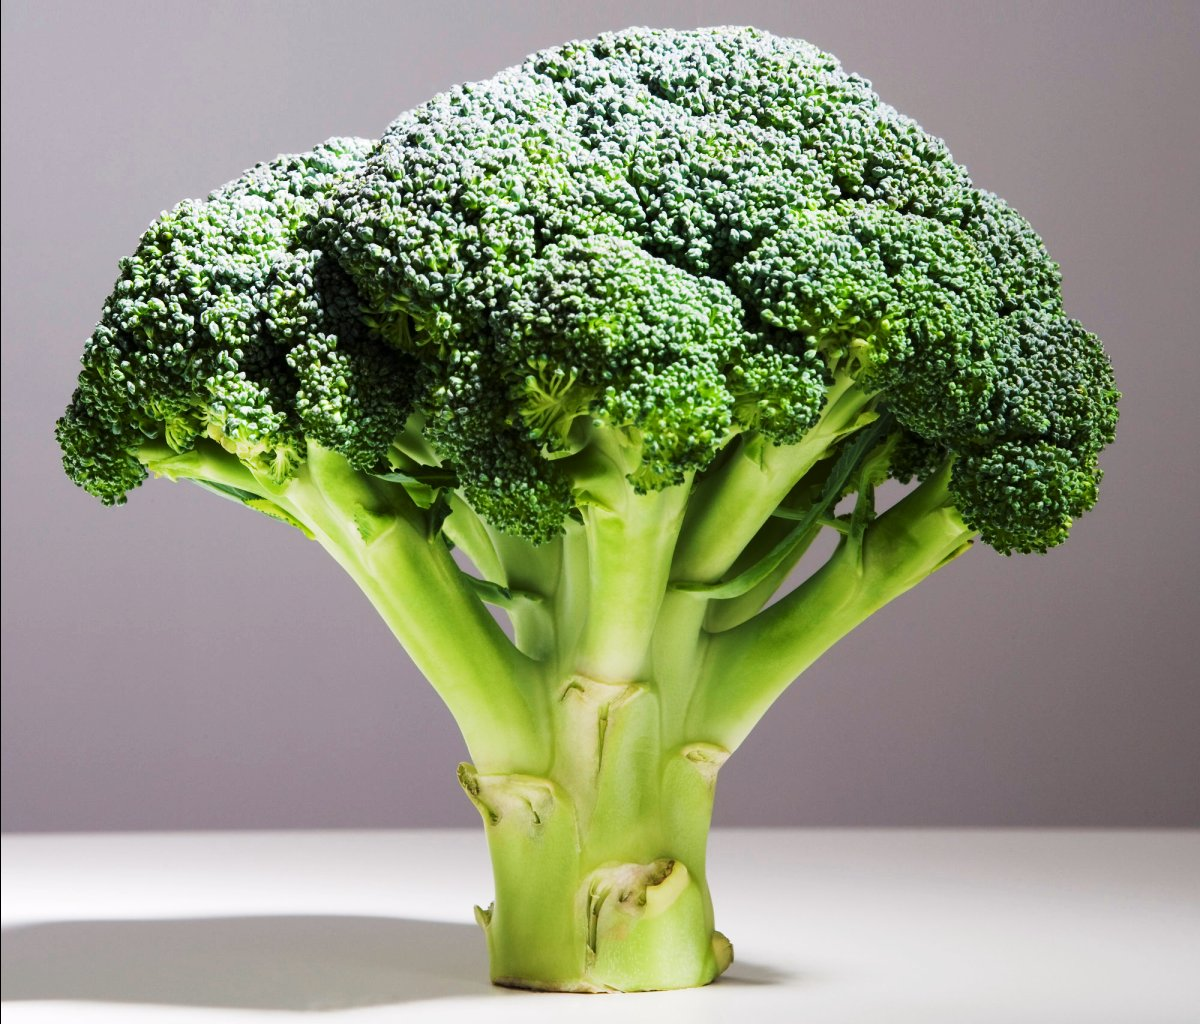 How This Broccoli Enzyme Can Slow Aging